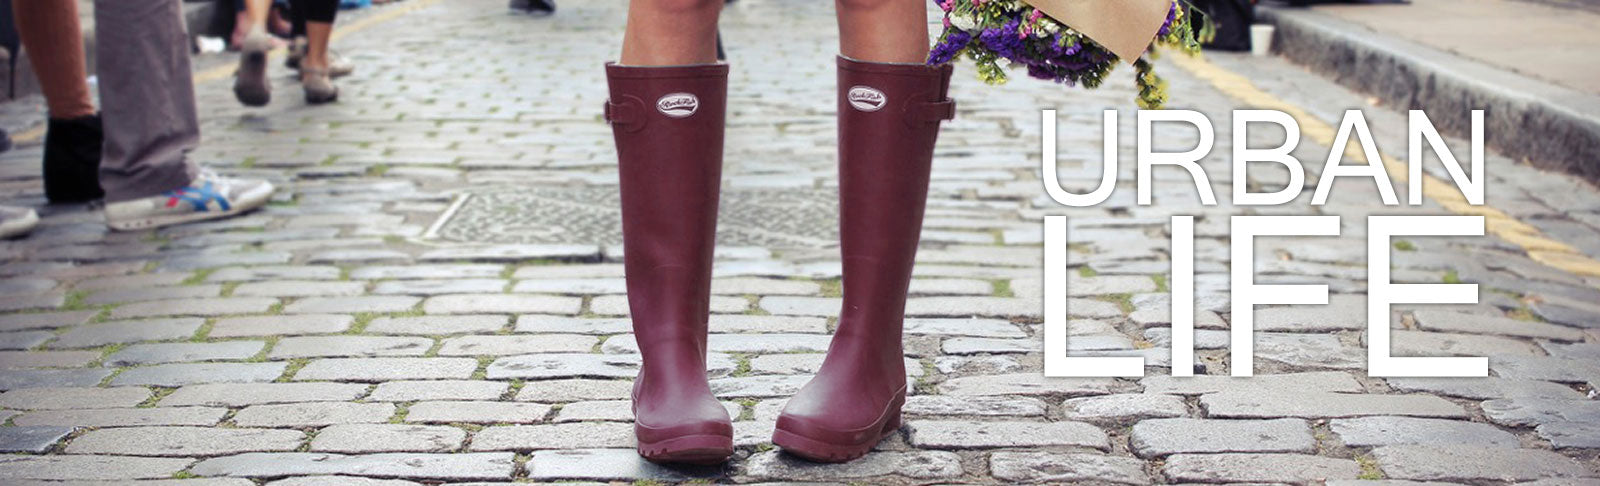 Rockfish Wellies fashion for the city